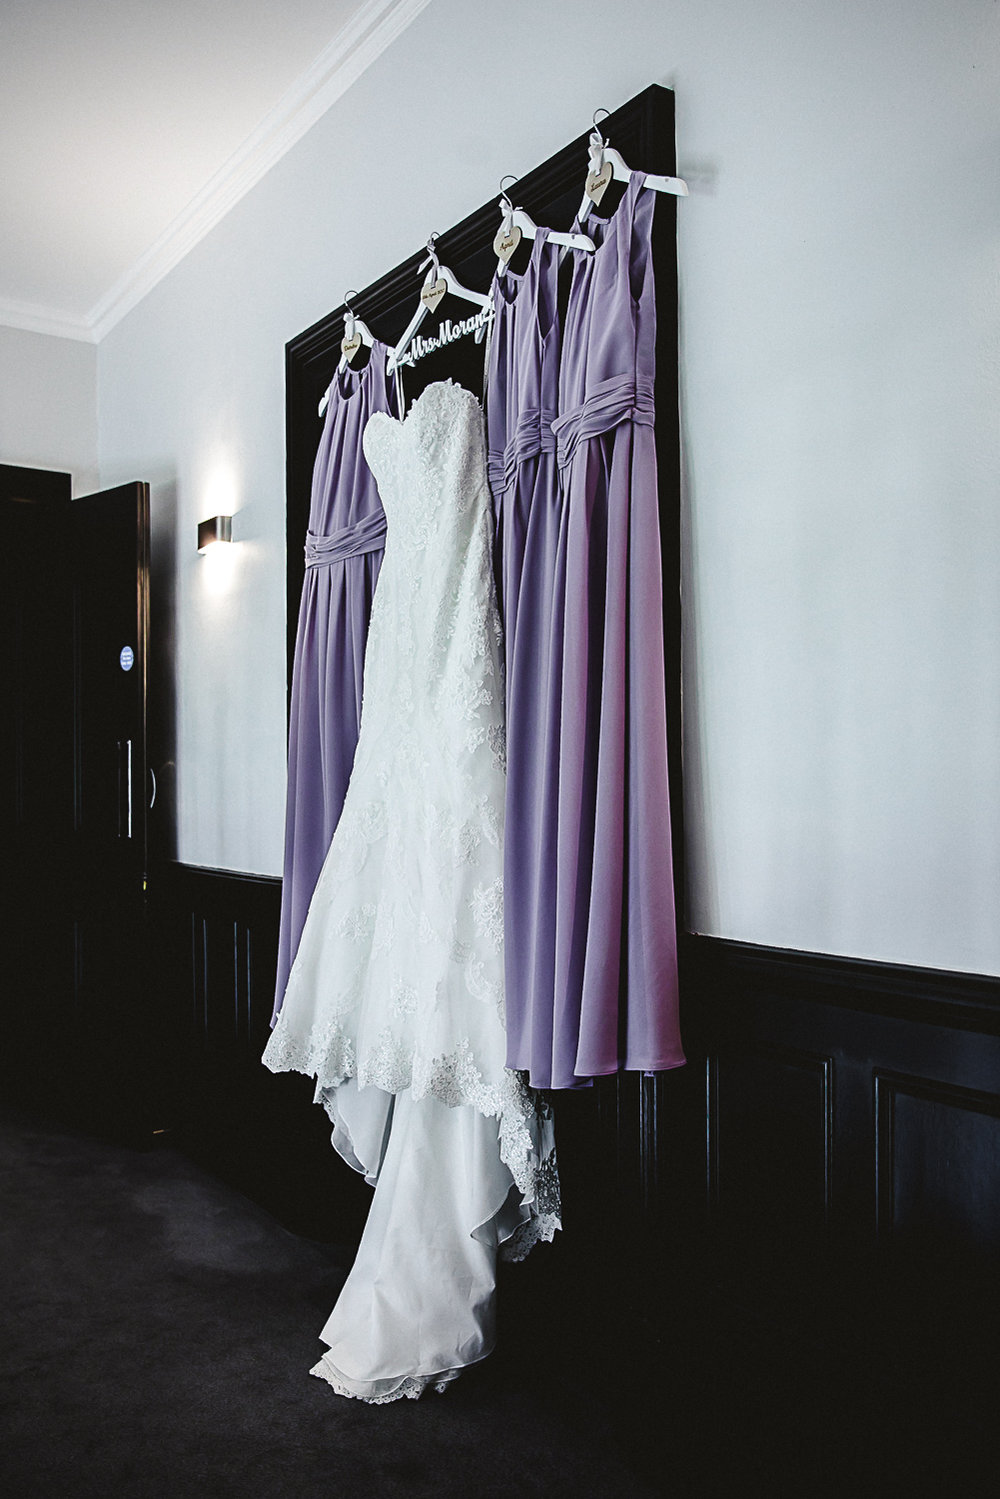 Bridal Gown and Lilac Bridesmaids Dresses = Cambridgeshire Wedding Photographer - Swynford Manor Wedding